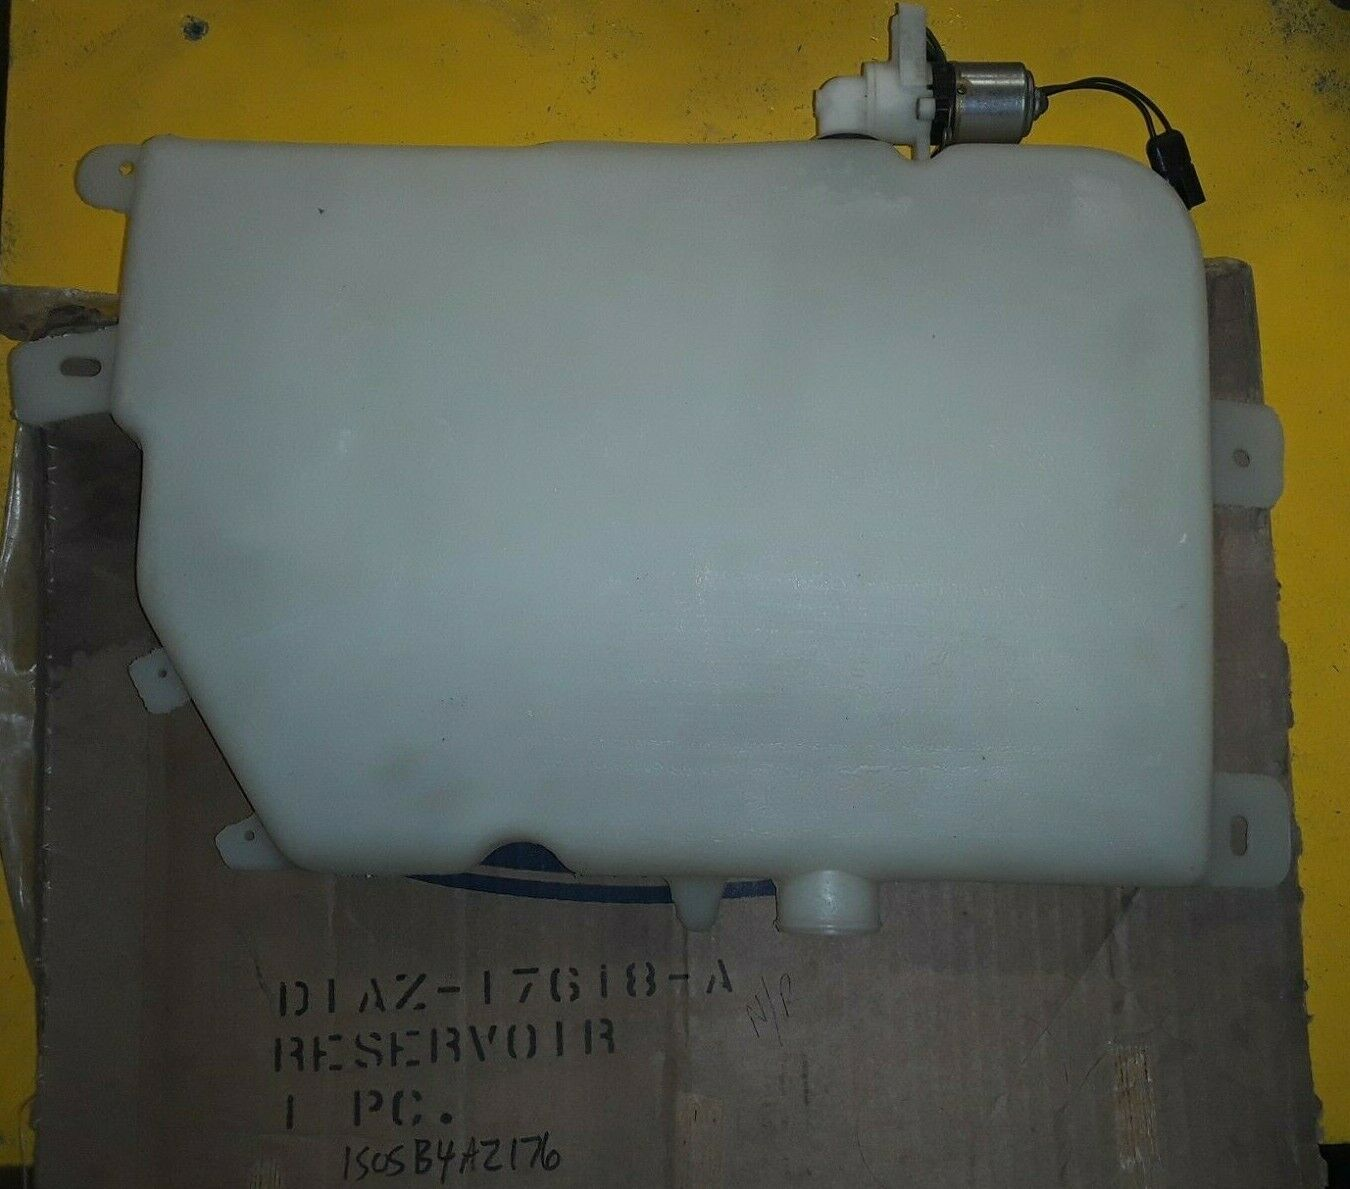 NOS OEM Ford 1971-74 Galaxie LTD STATION WAGON Washer Reservoir D1AZ-17618-A